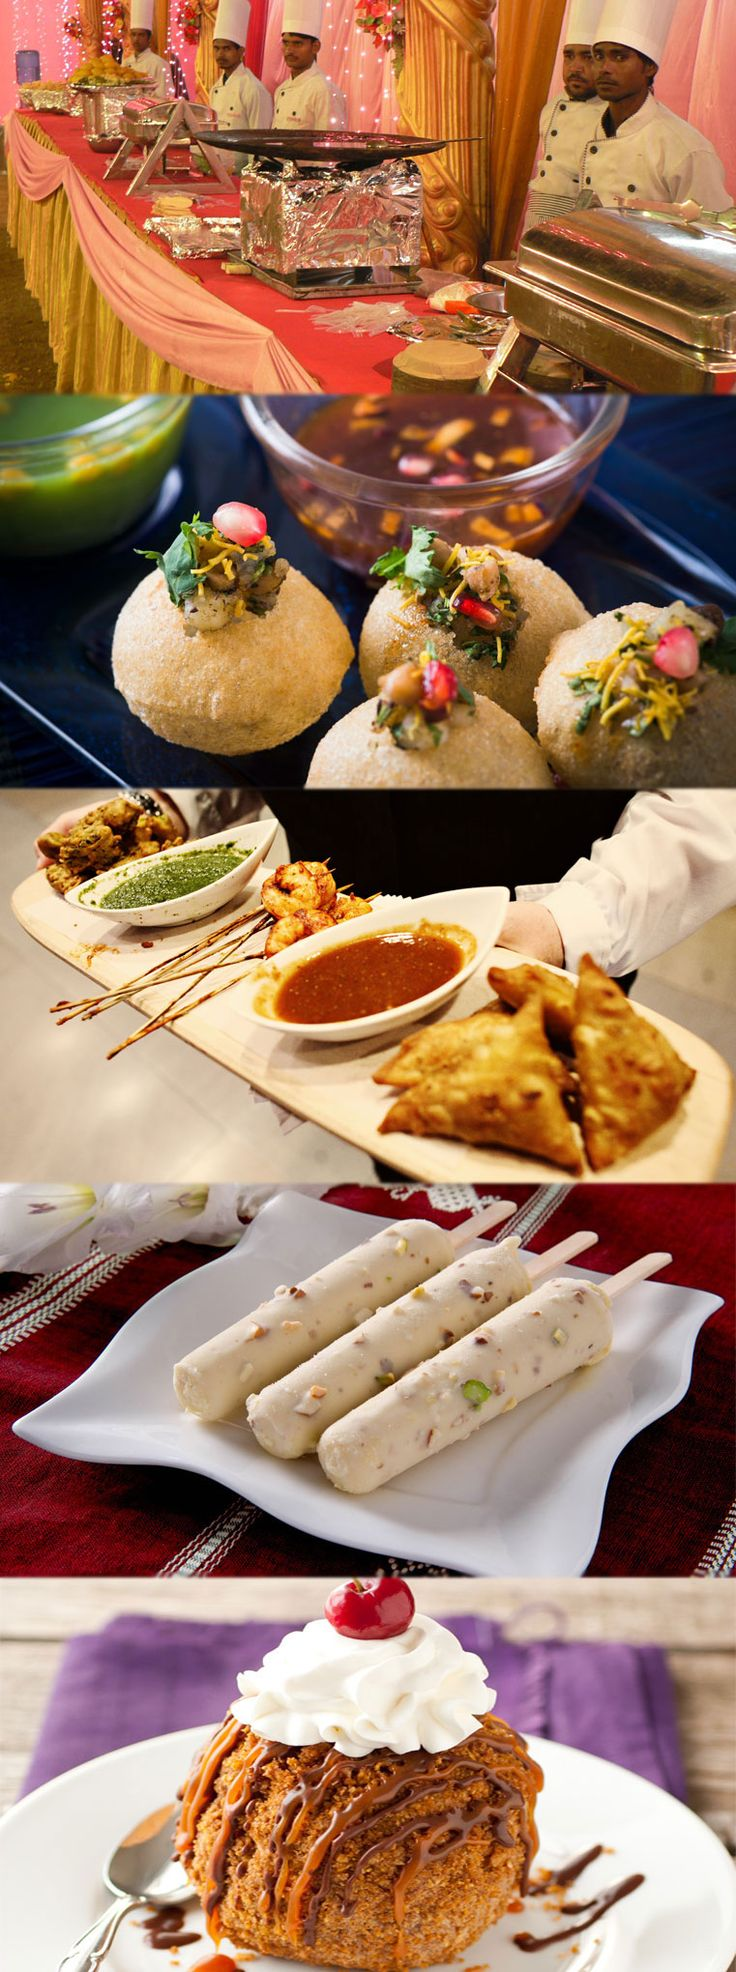 Indian Wedding Food Stall Ideas Get more details: http://www.spicevillage.co.uk/catering/indian